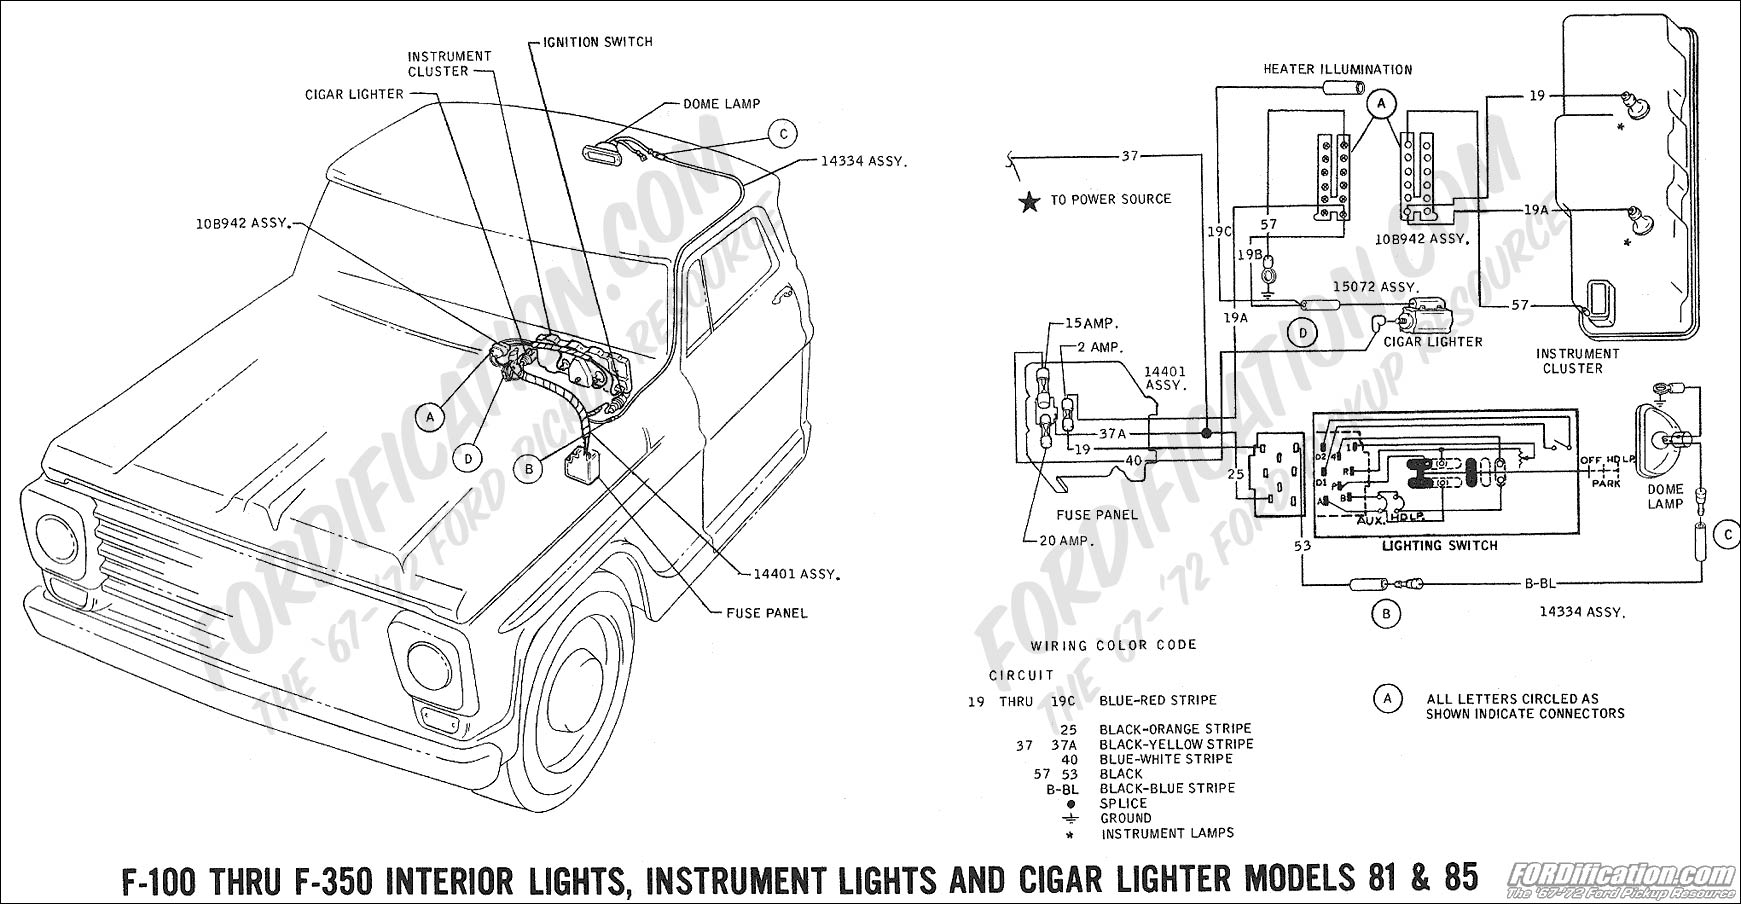 1984 wiring diagram for fleetwood mobile home